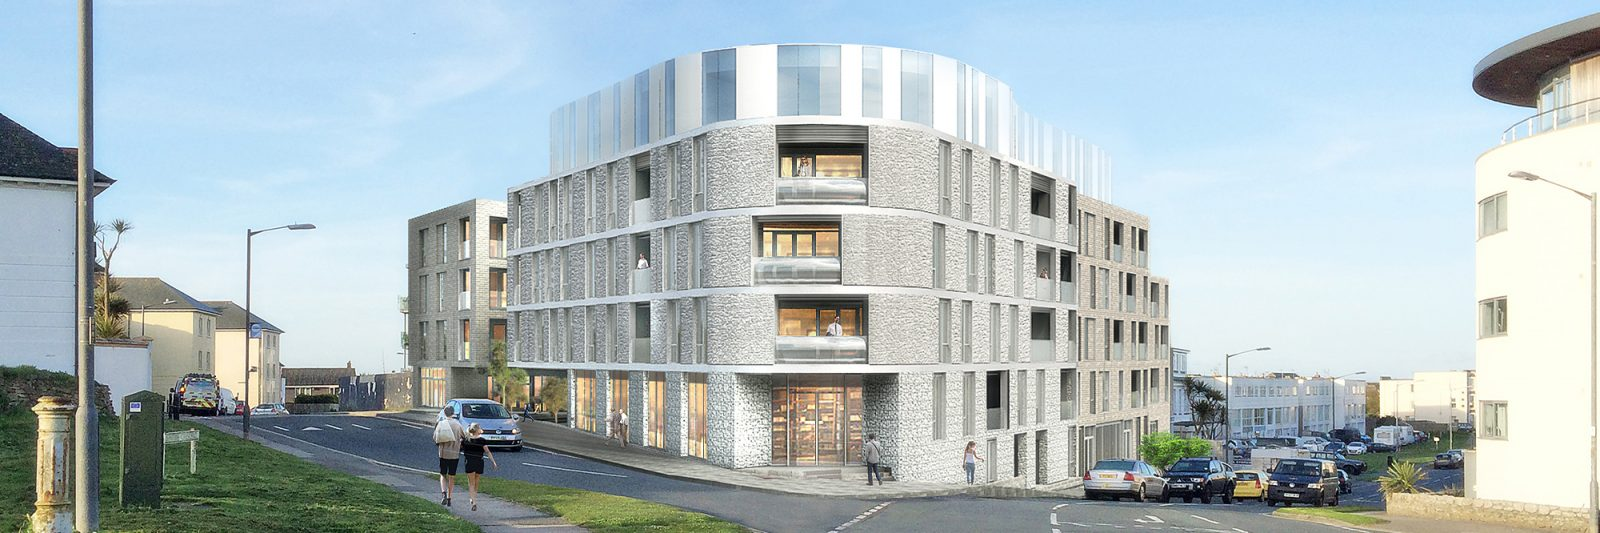 Stephens and Stephens Developers One Pentire Newquay Cornwall Exterior CGI banner-02